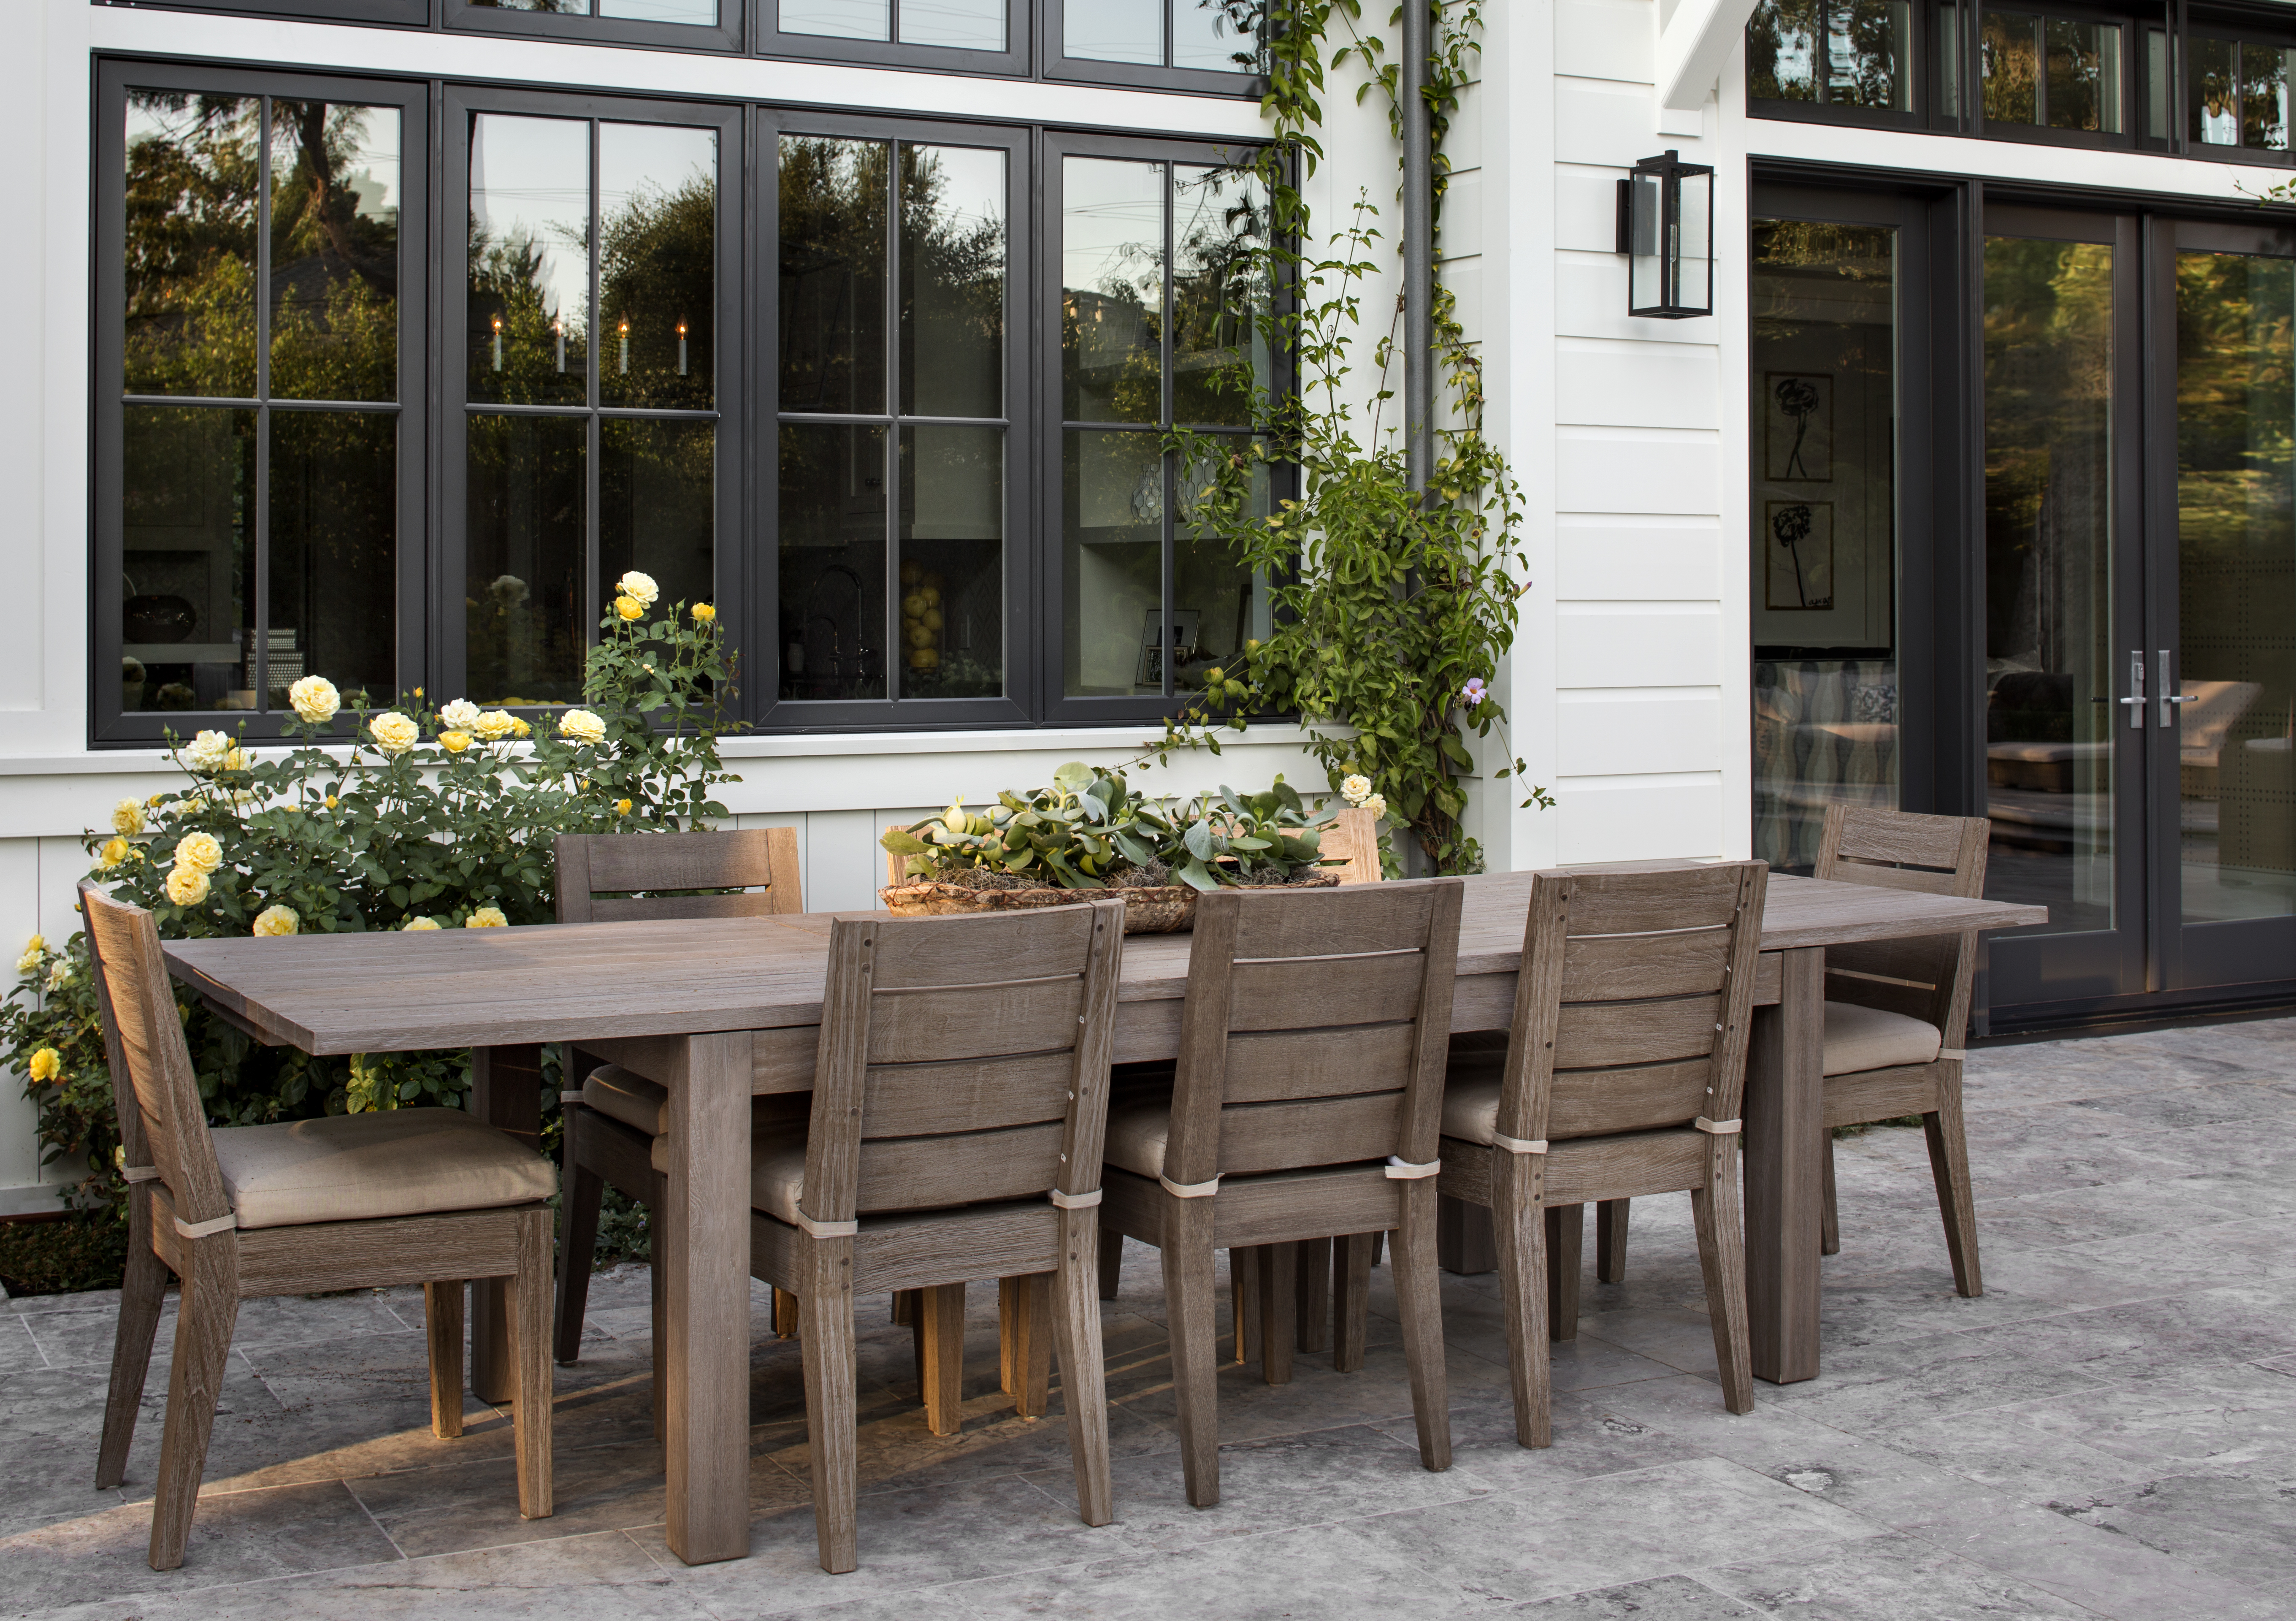 Exit through the glass doors, where you will find a large outdoor dining area. Situated among plants and flowers, the dining table and chairs are made from raw wood.